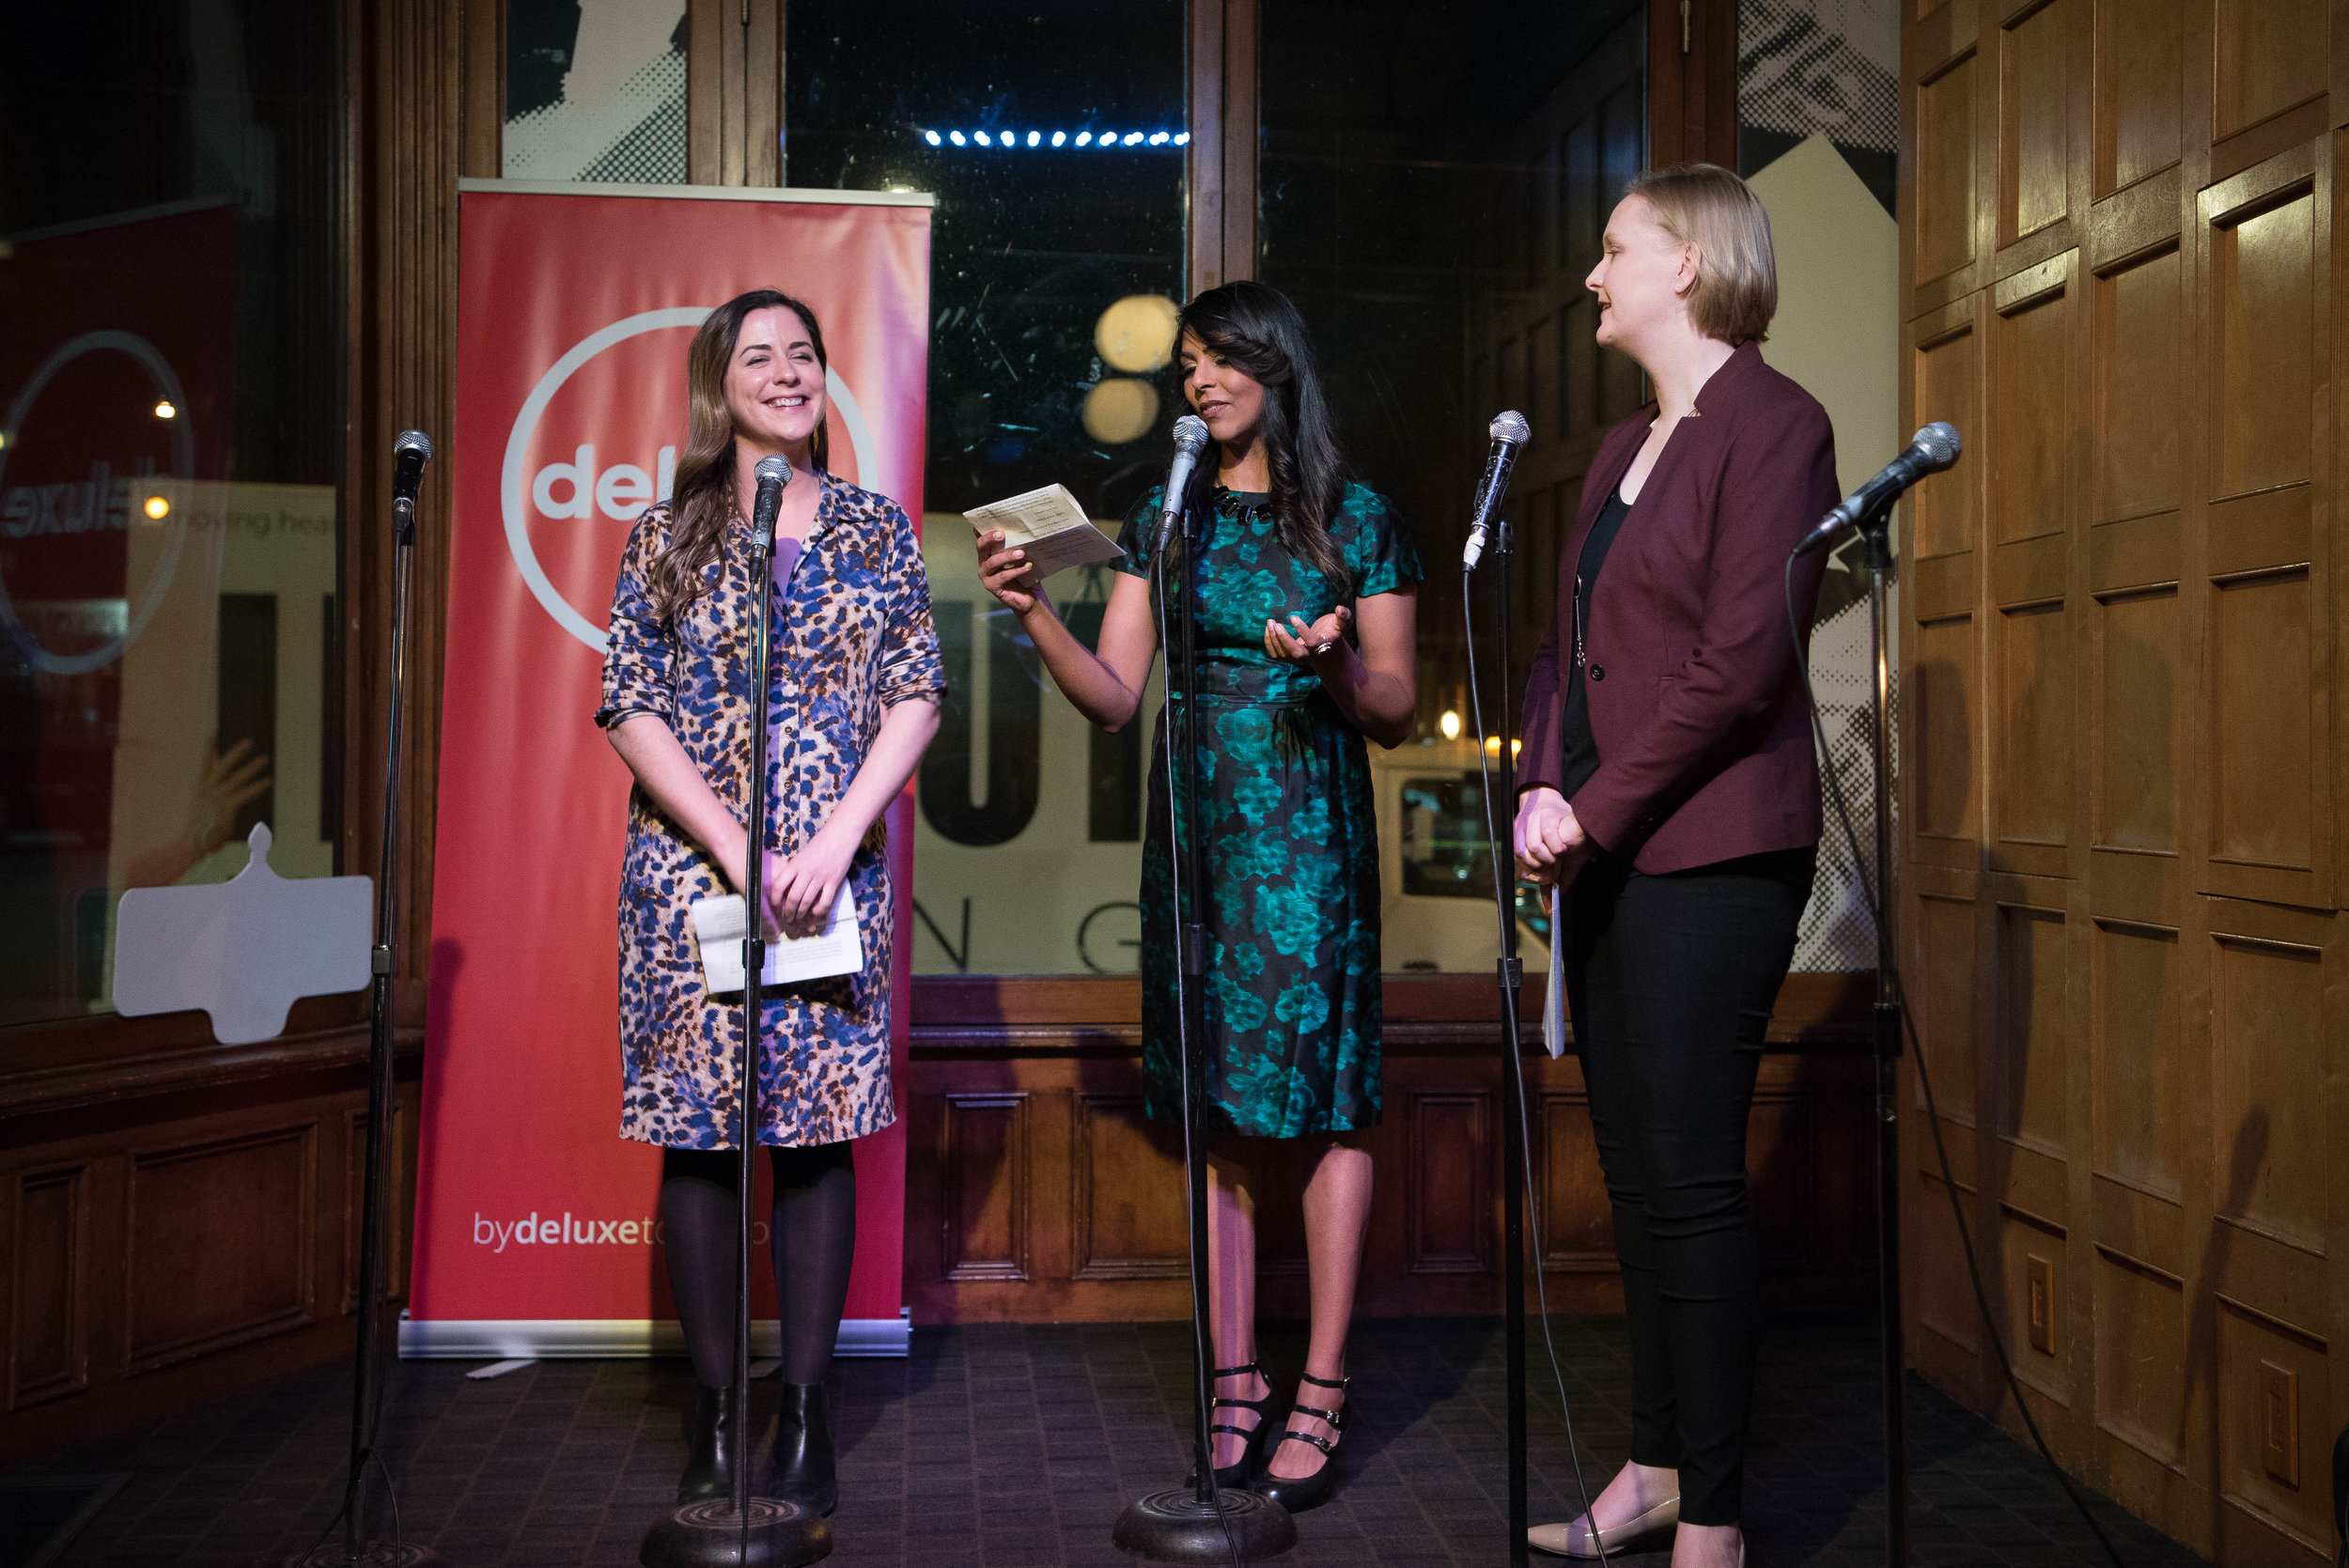 Founding members Lauren Mackinlay, Farah Merani and Ciara Murphy. (l-r)